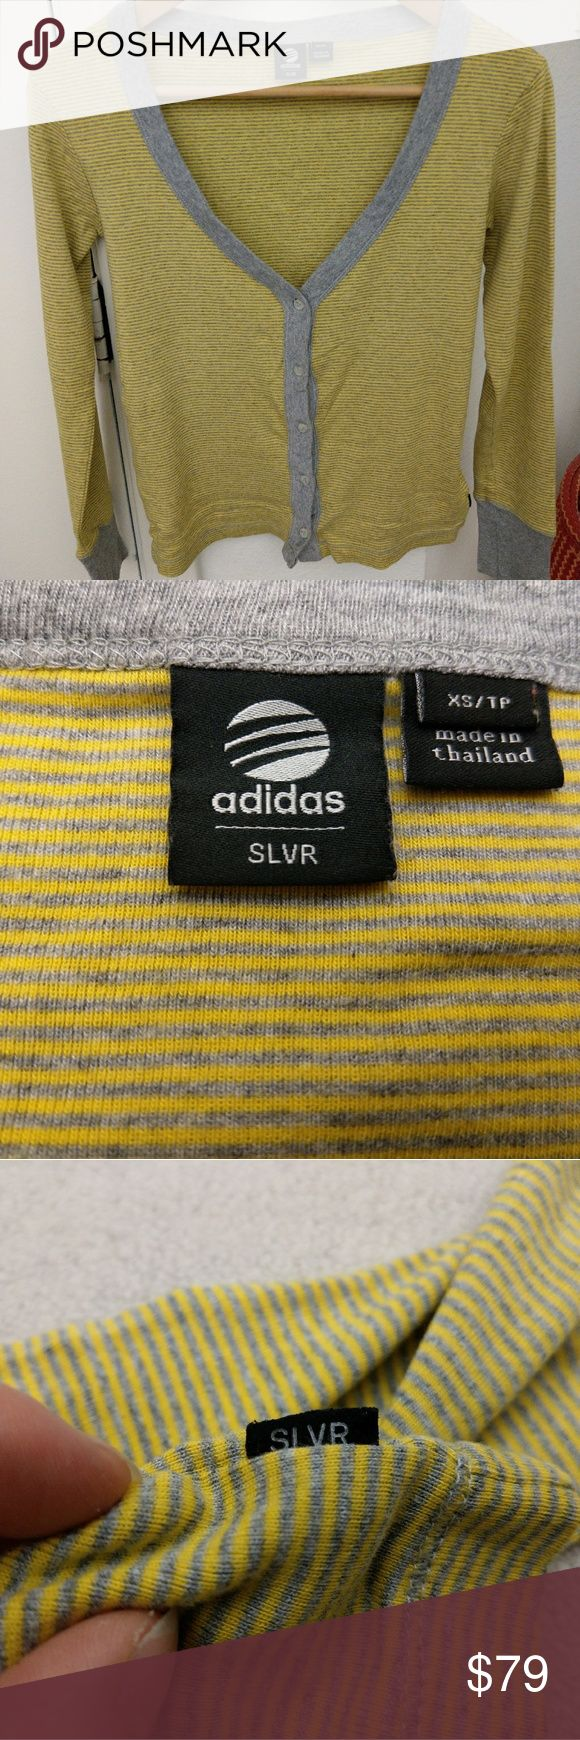 Rare Adidas Silver Cardigan Sweater Mint Condition NWOT Pristine ultra rare Adidas Silver Cardigan Sweater. On par with Adidas Y3or Stella McCartney. Pristine, never worn. No rips no stains! Have a wonderful day! adidas Sweaters Cardigans